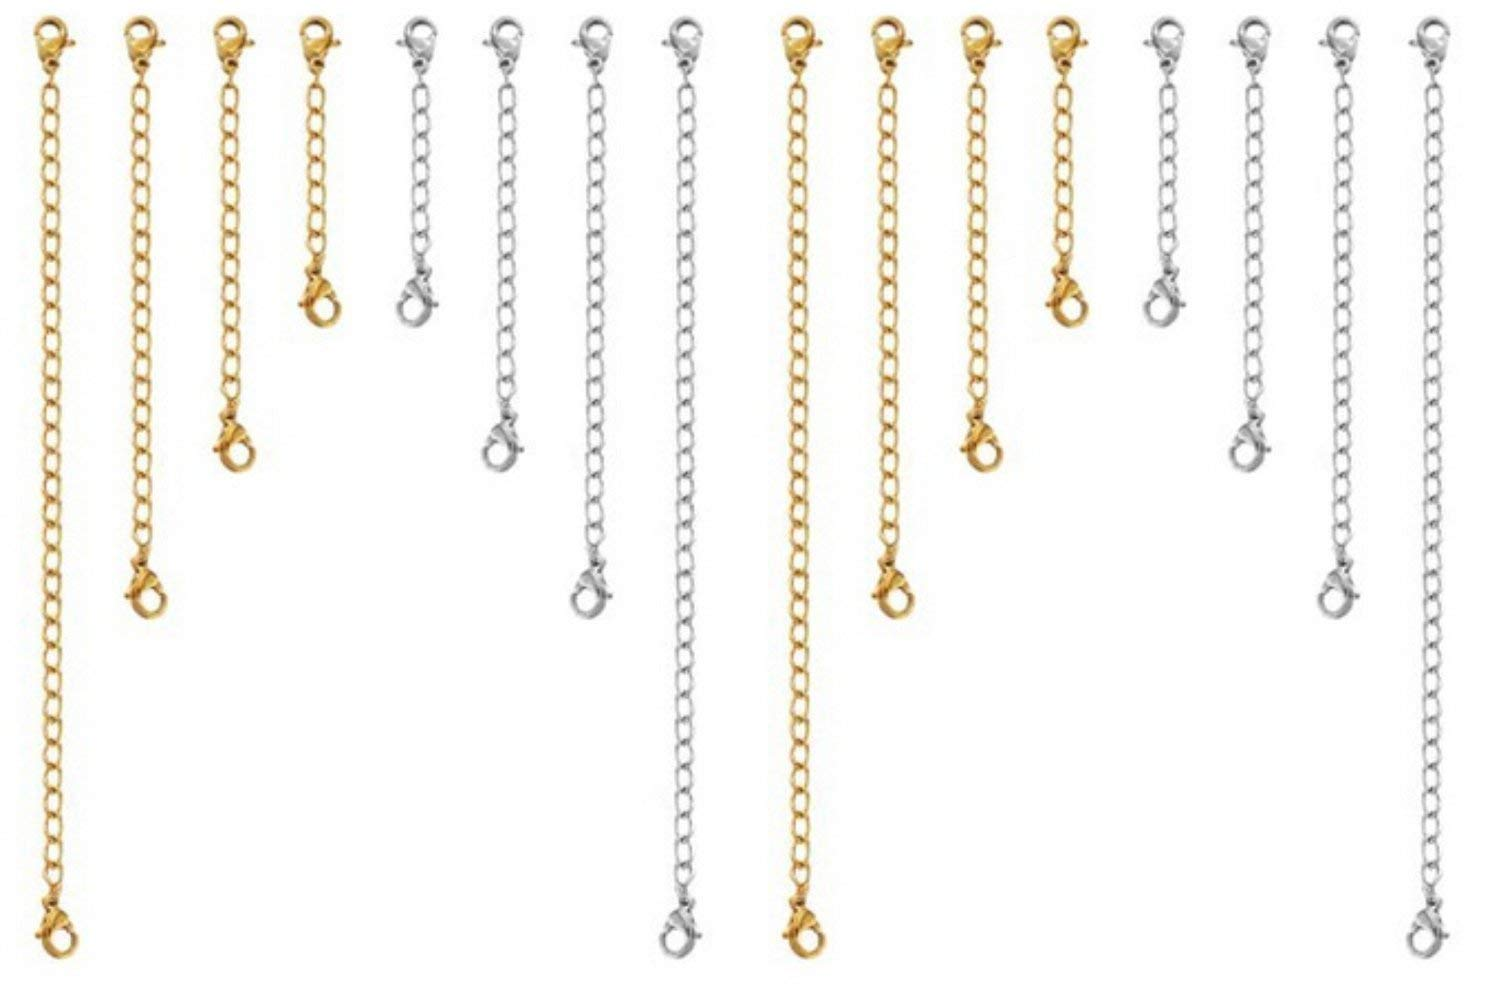 Get Quotations Swonvi Tm 16 Pcs Silver And Gold Color Necklace Bracelet Chain Jewelry Extender